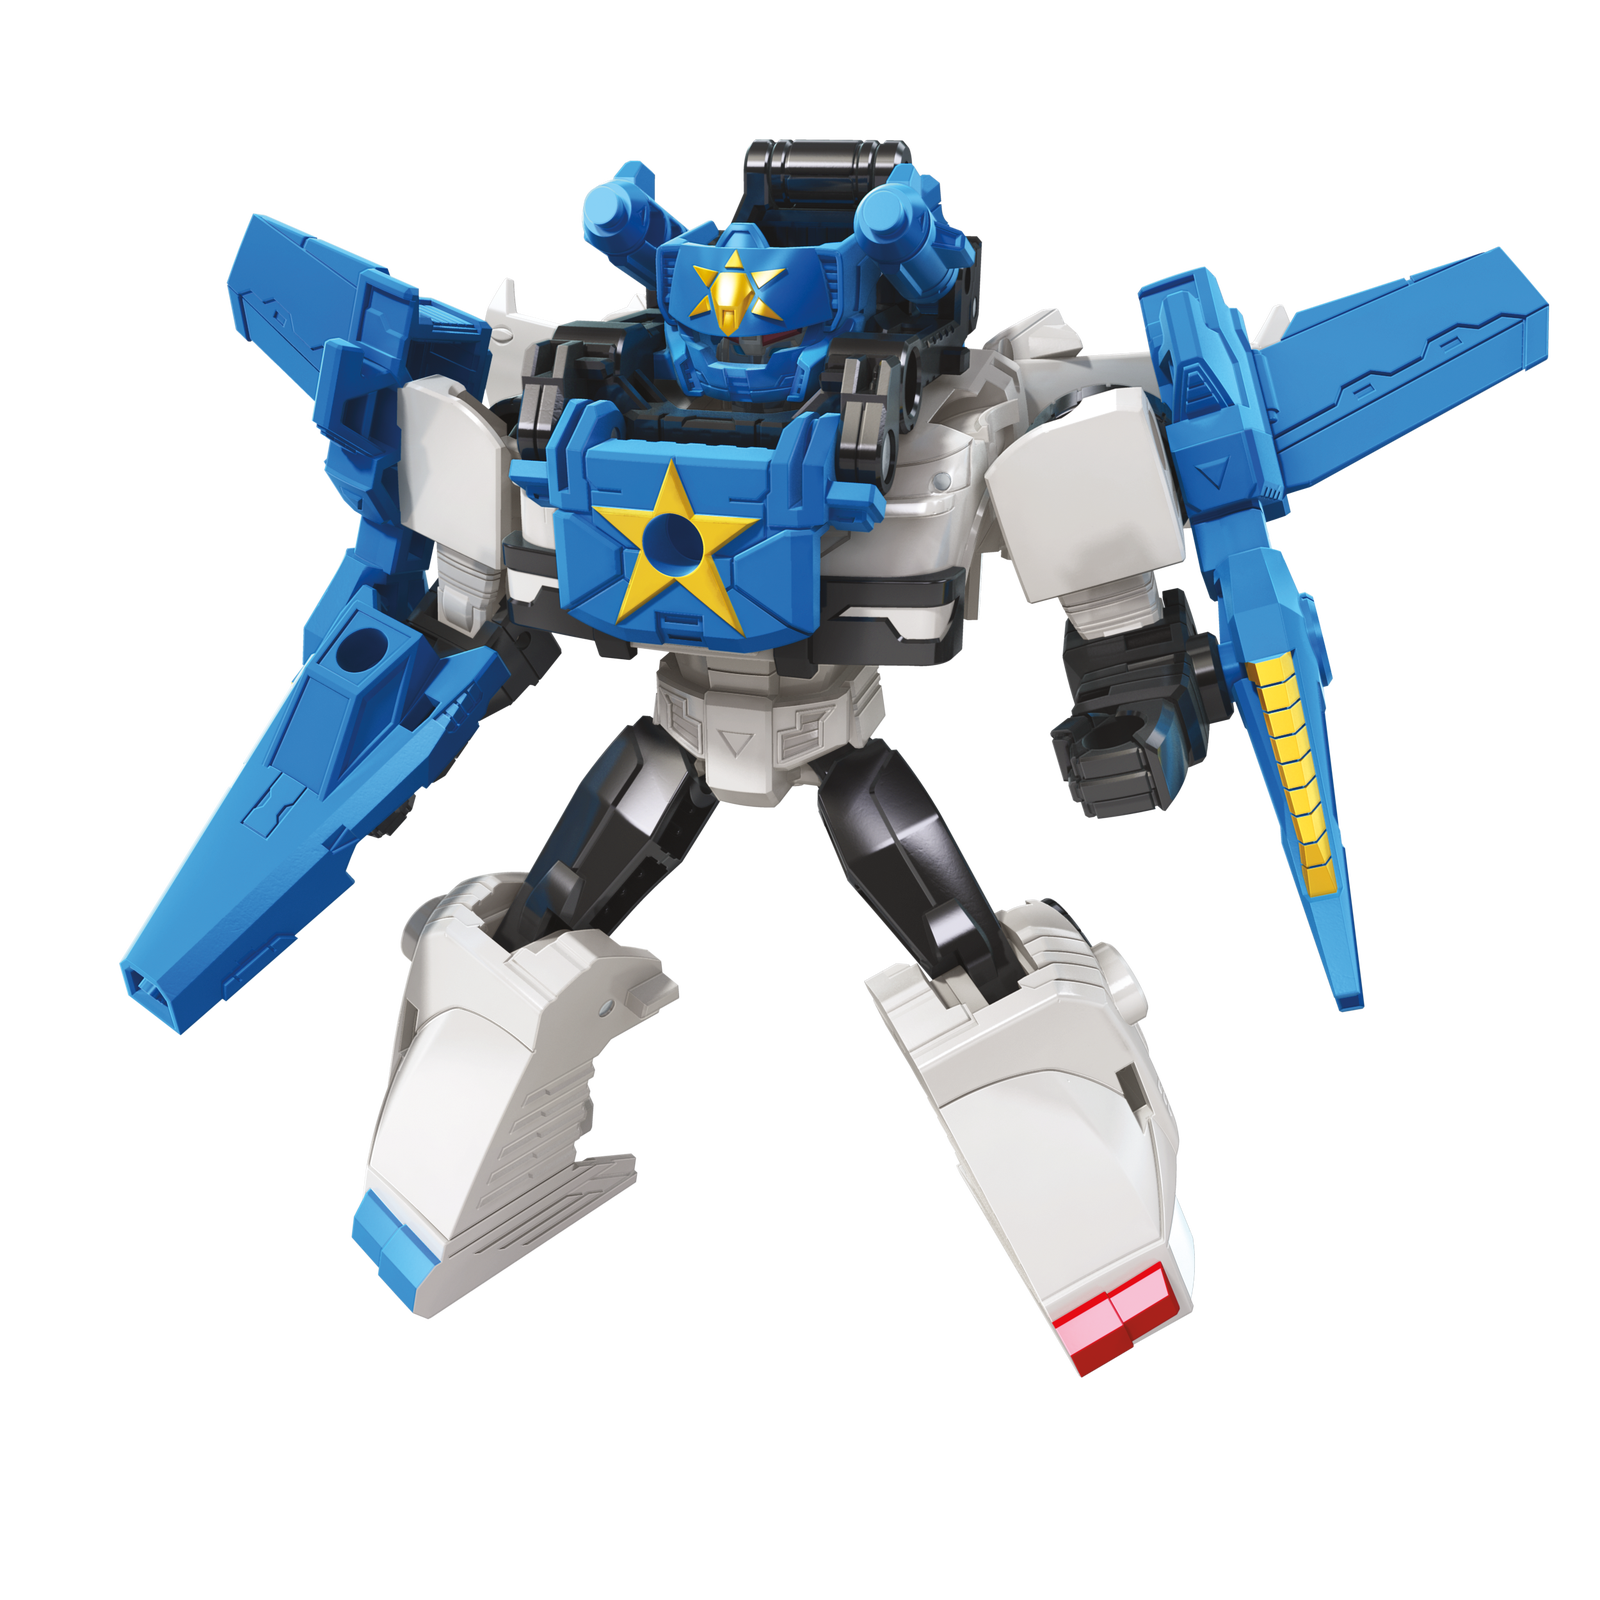 Transformers Toys Cyberverse Spark Armor Battle Class Prowl(Ages 6 and Up/ Approx. Retail Price: $14.99/ Available: 8/1/2019)